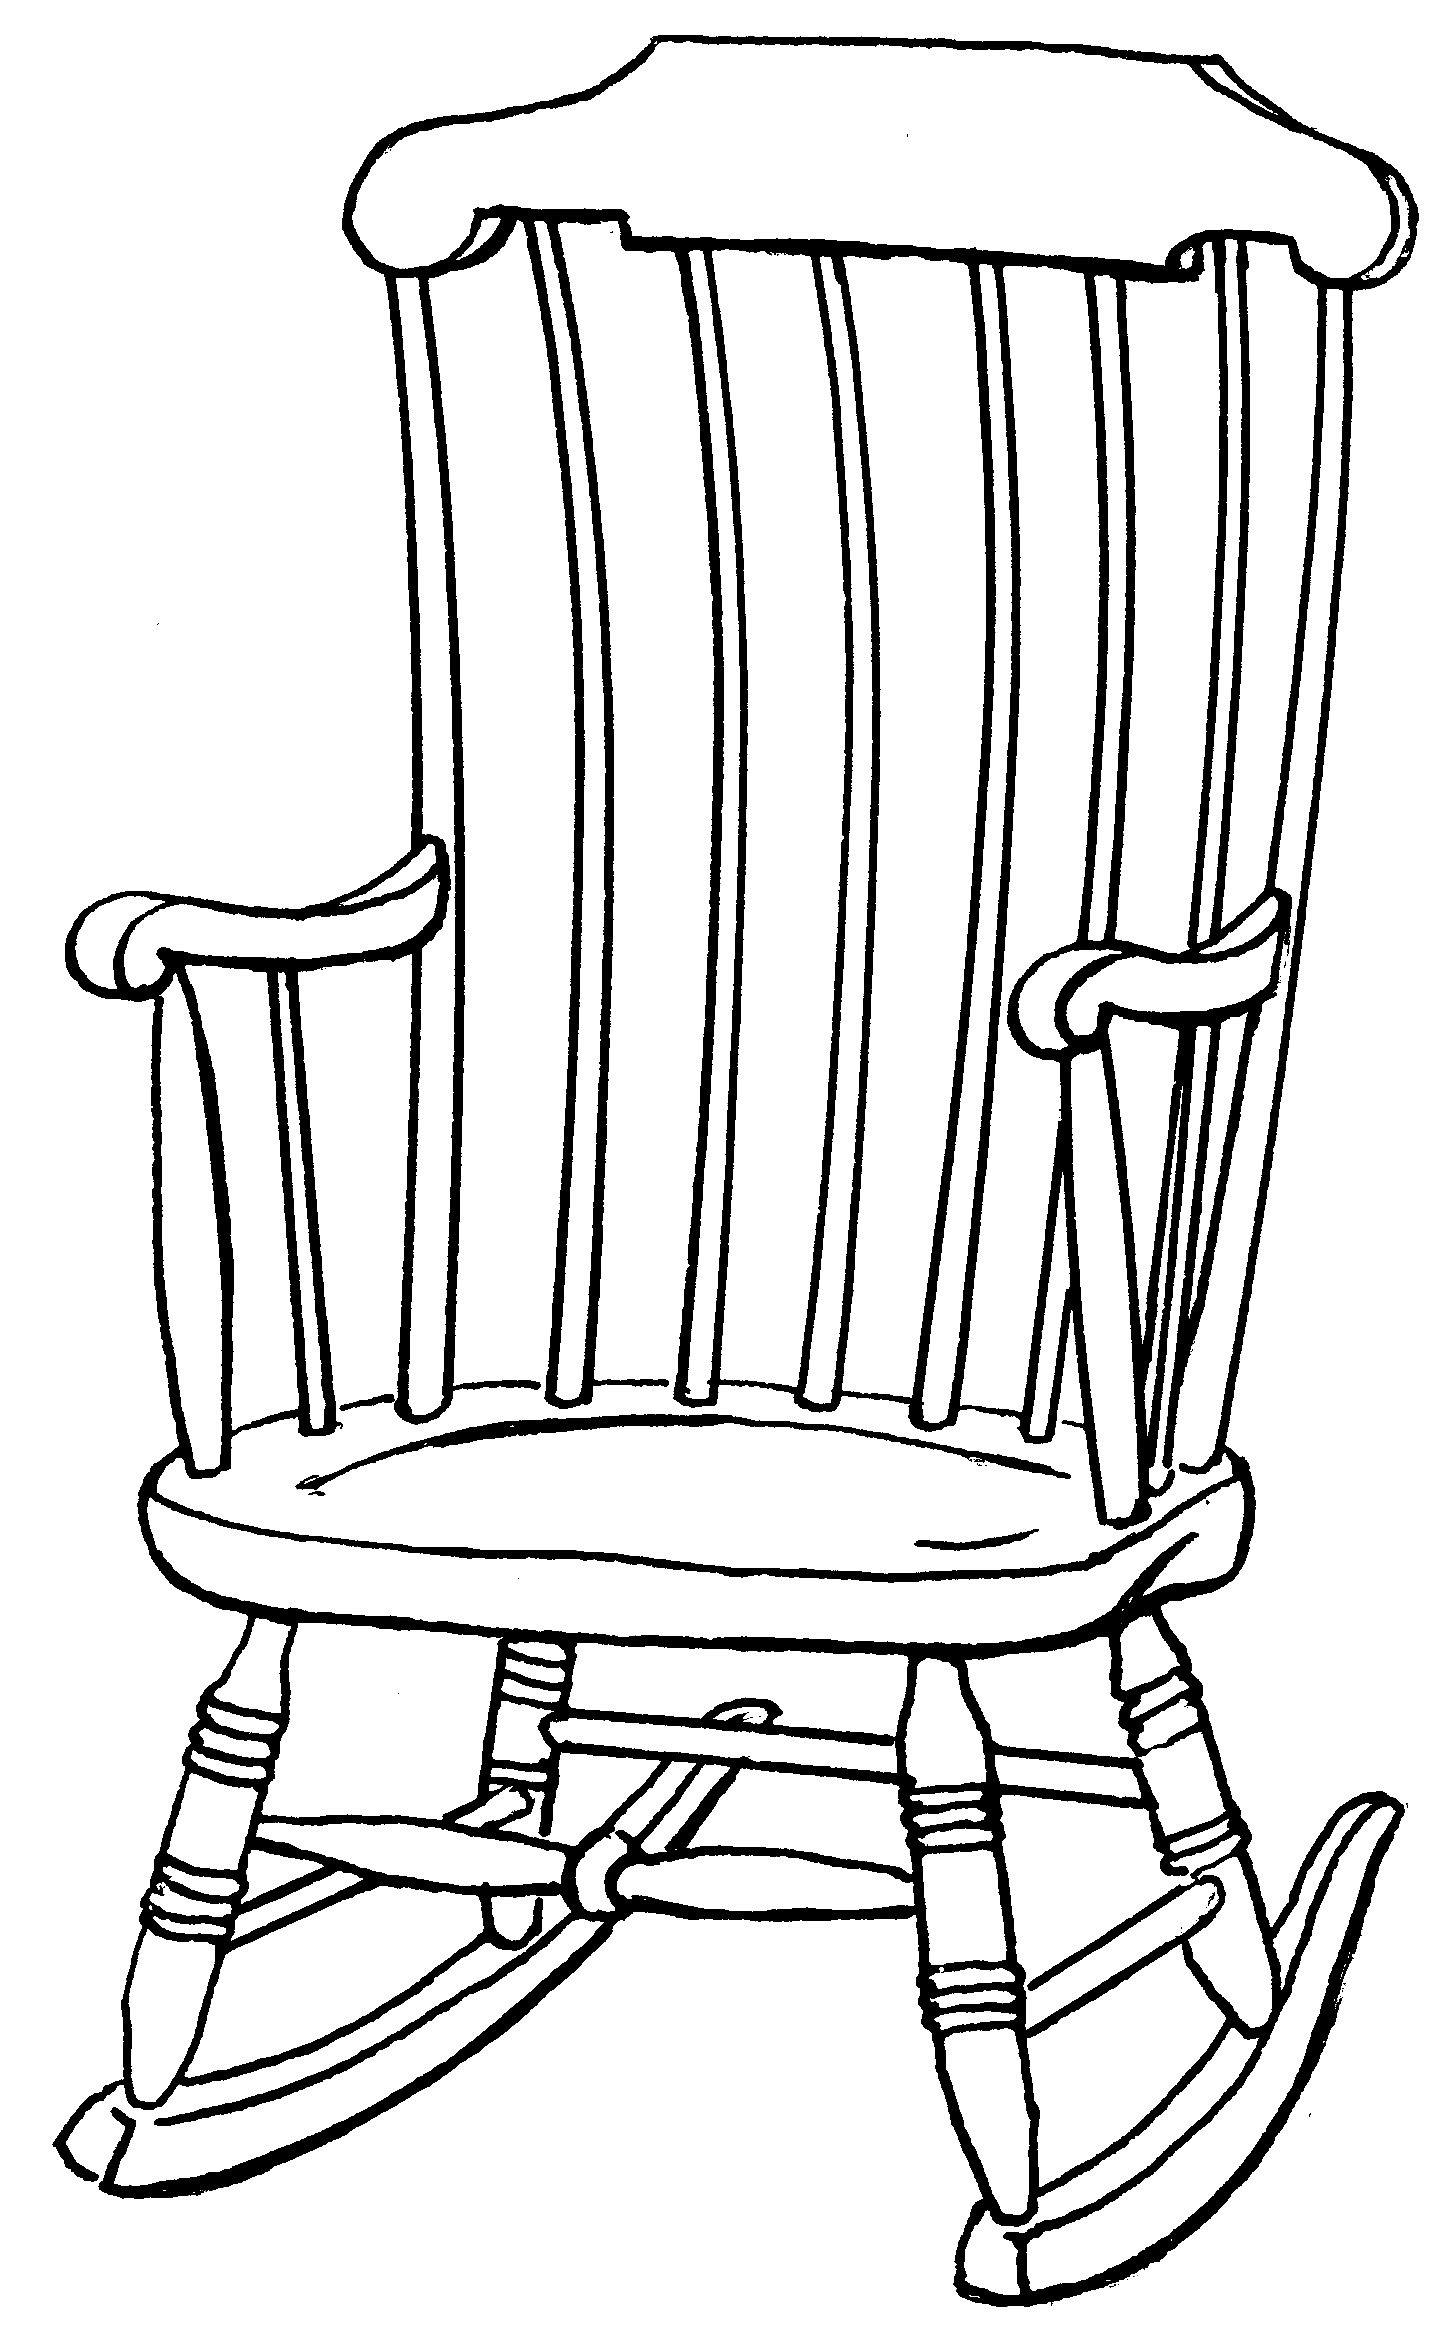 Old woman clipart black and white rocker image free download Free Rocking Chair Cliparts, Download Free Clip Art, Free ... image free download